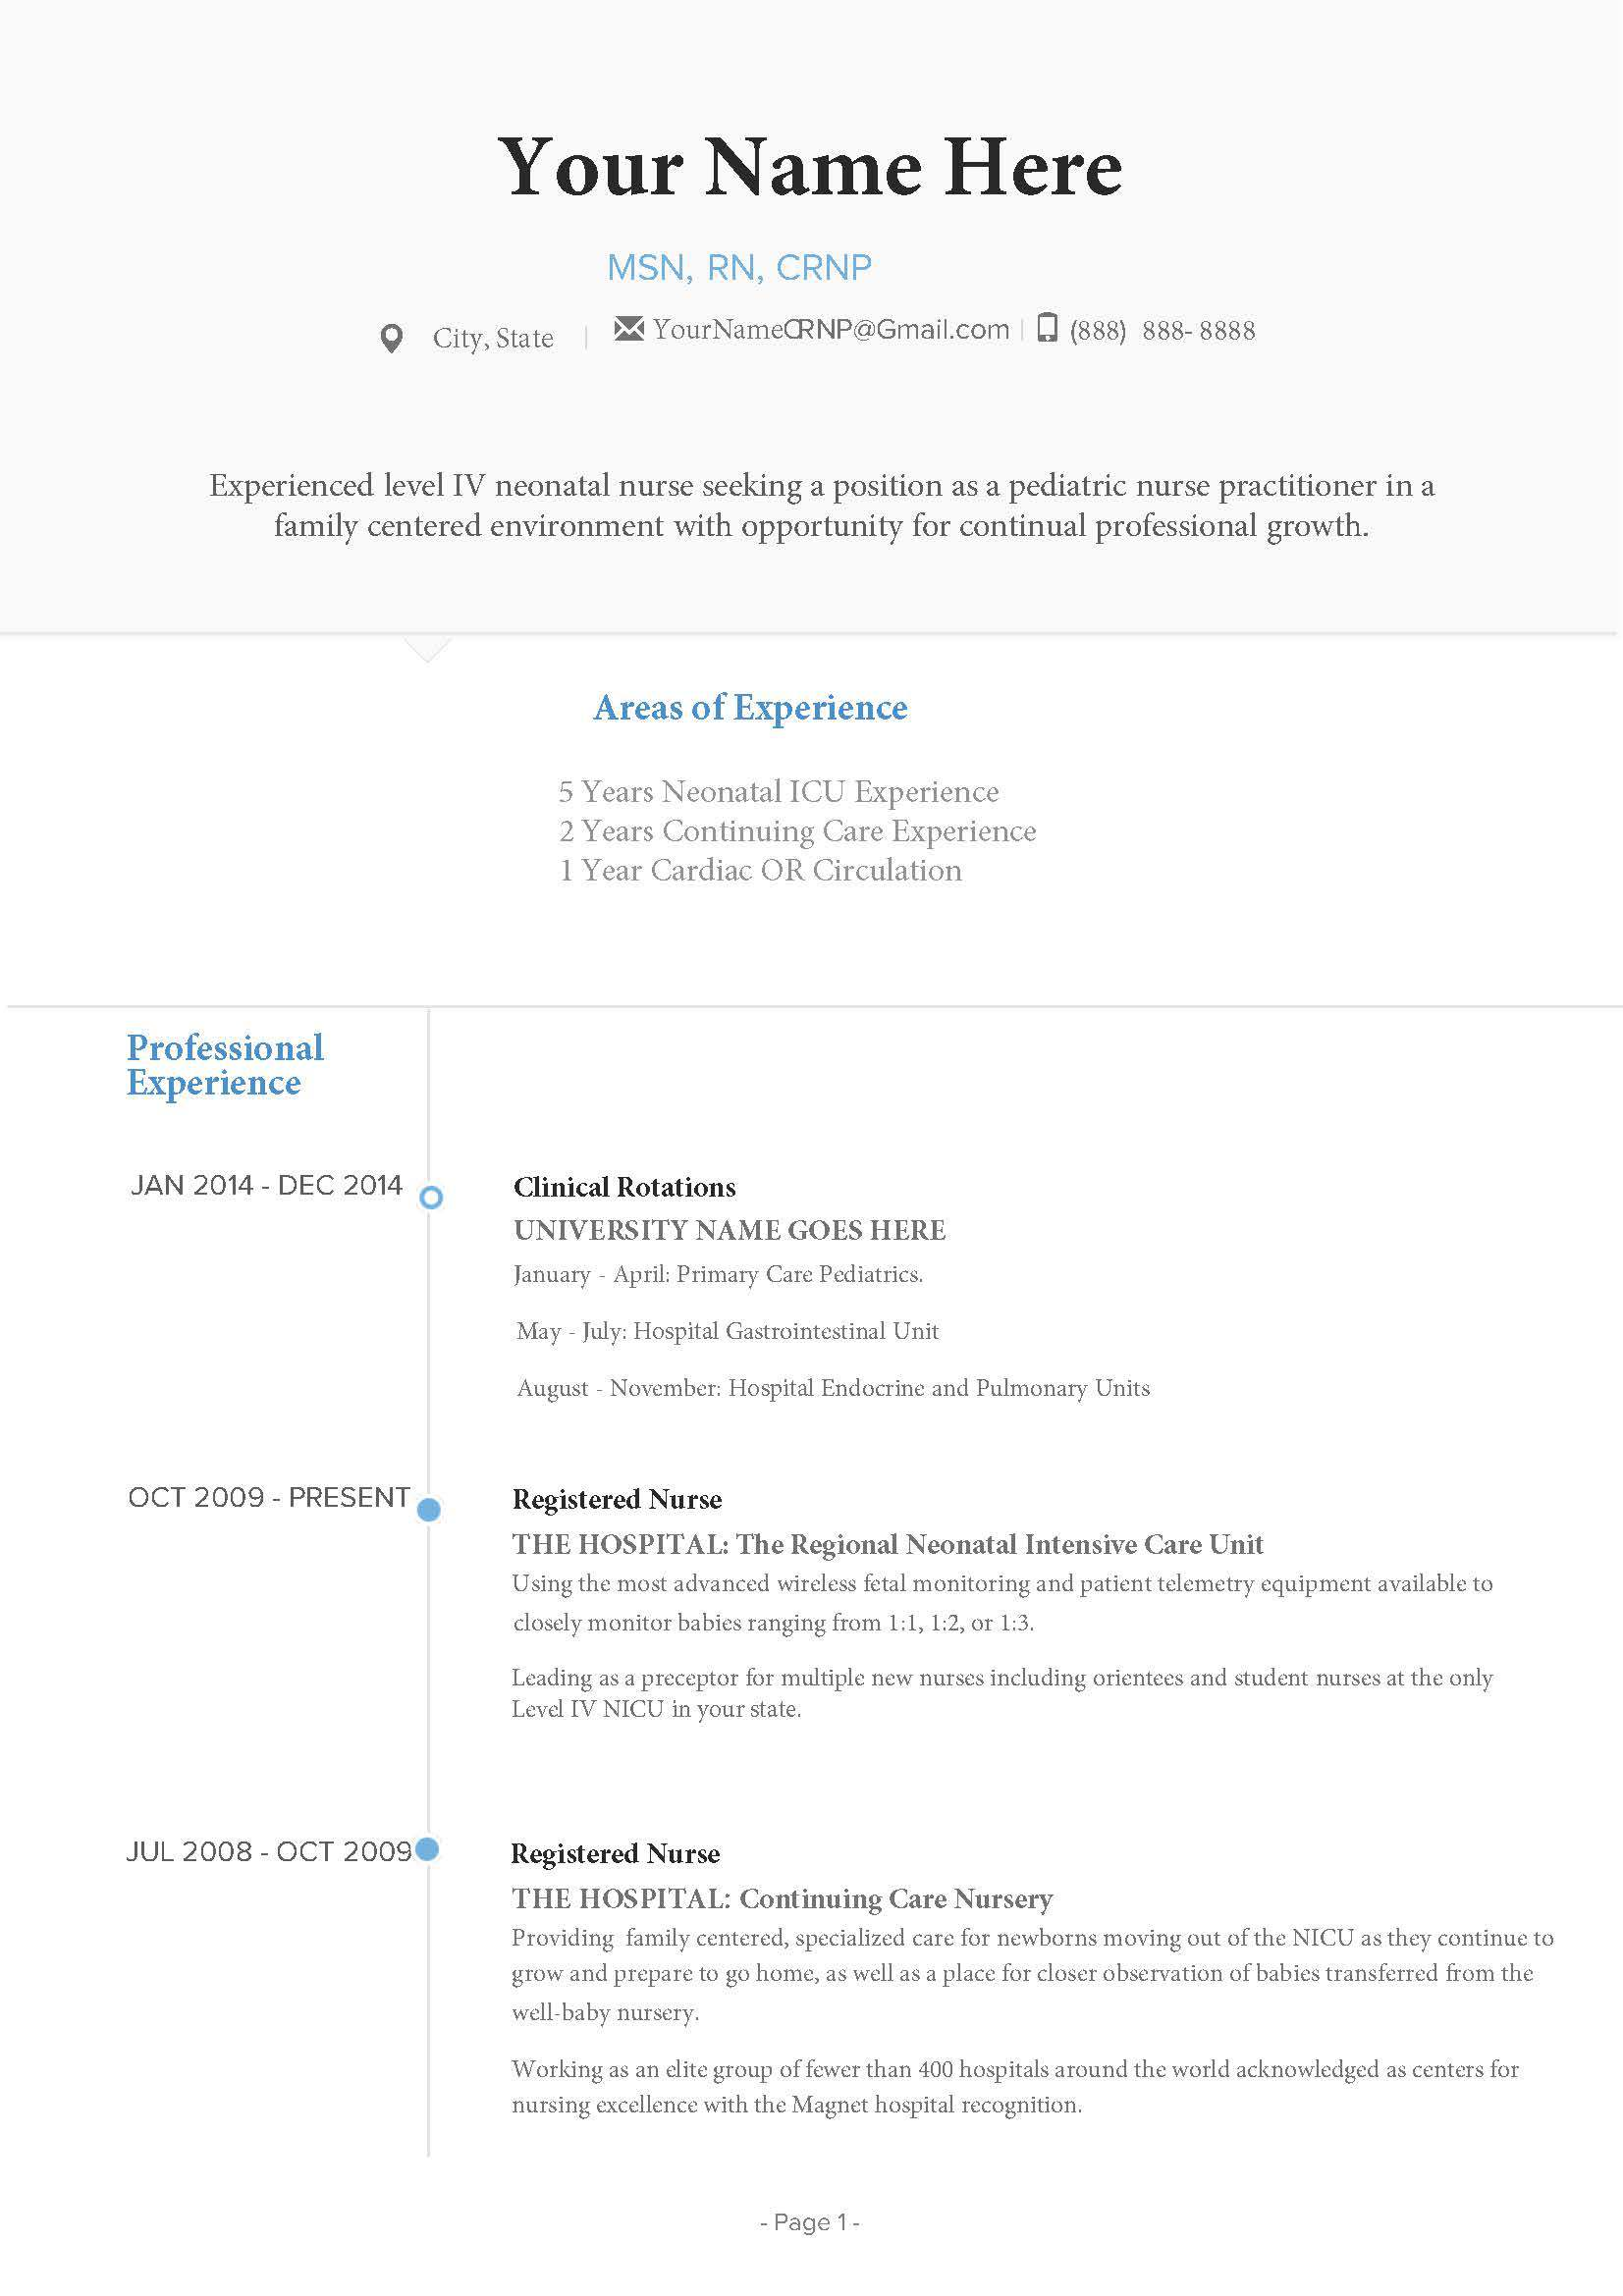 Nurse Practitioner Resume Guide.